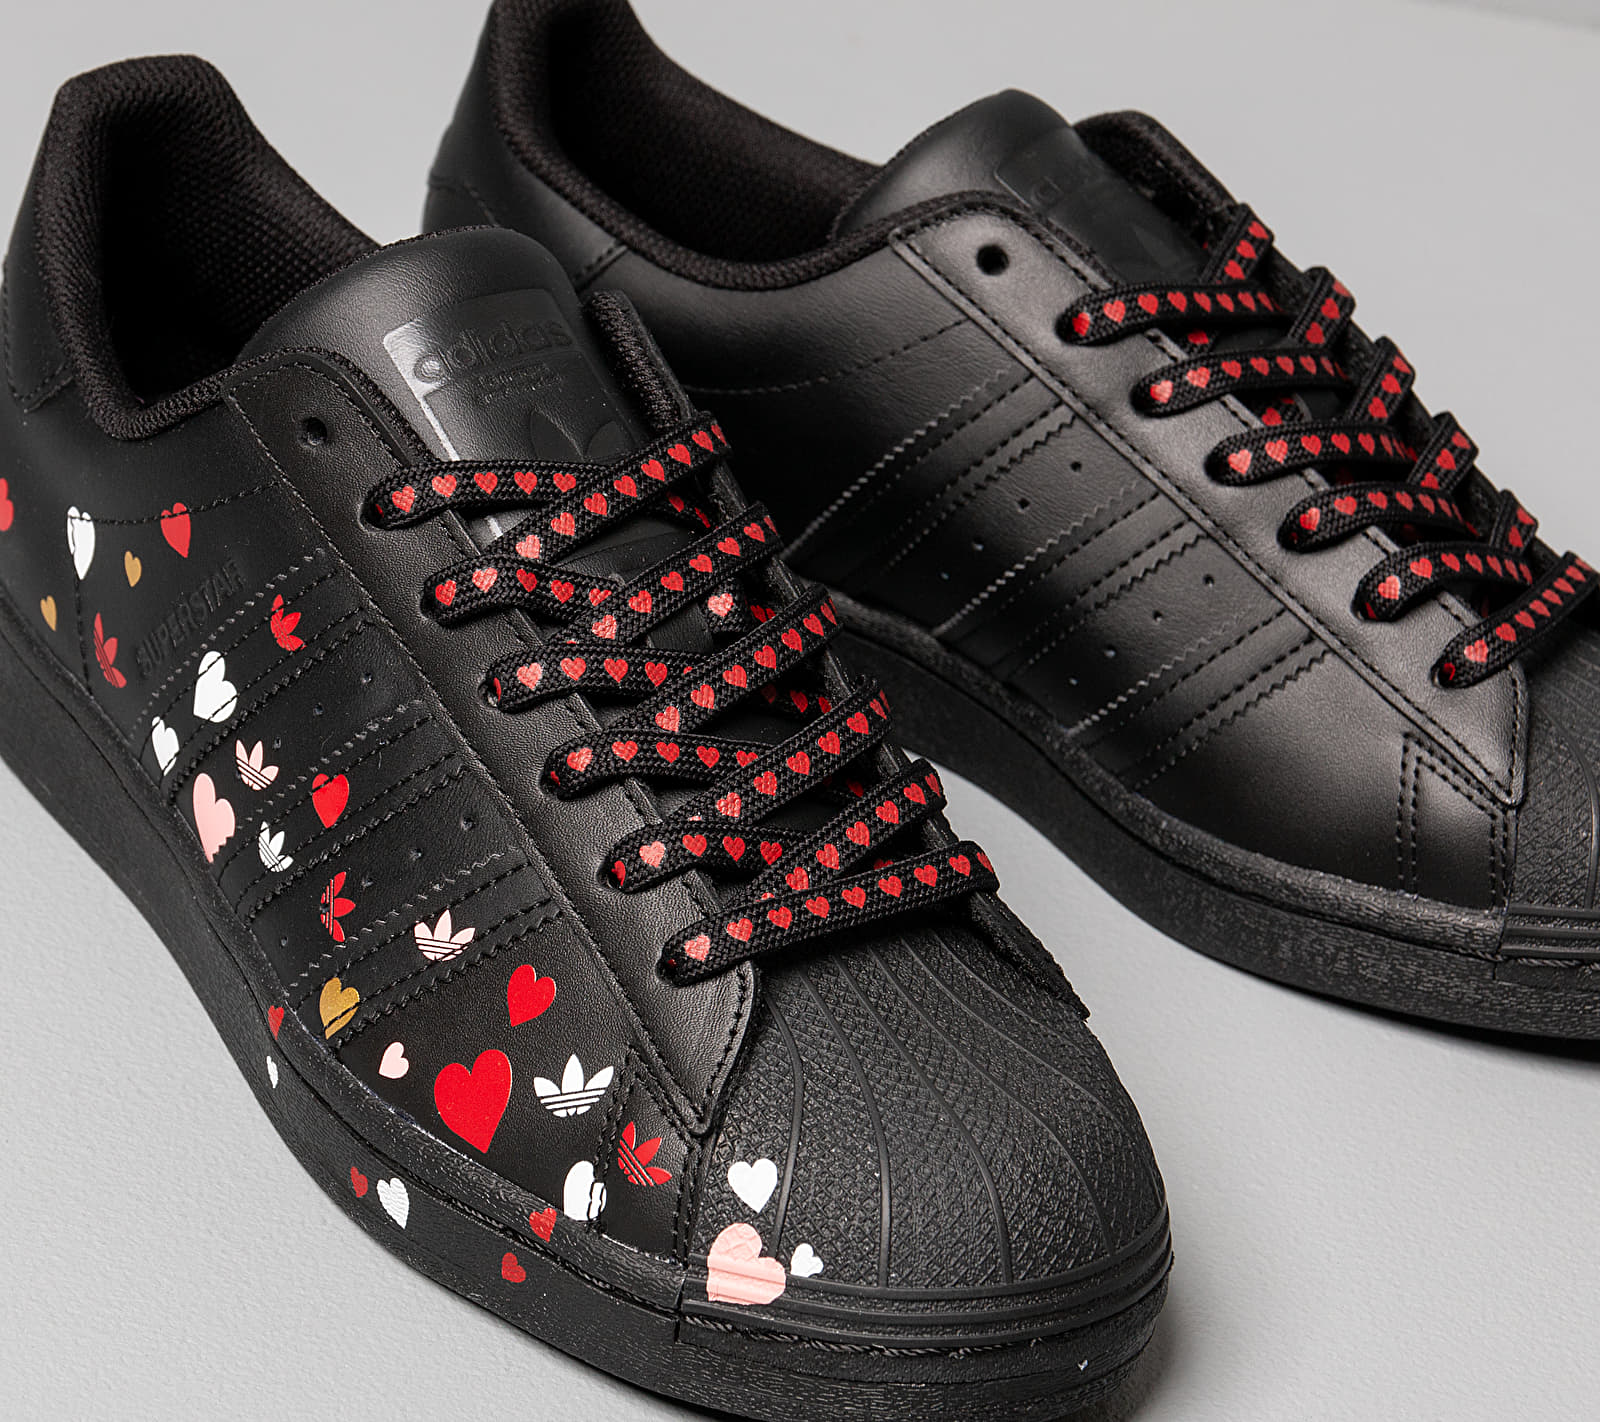 adidas Superstar W Core Black/ Ftw White/ Glow Pink EUR 40